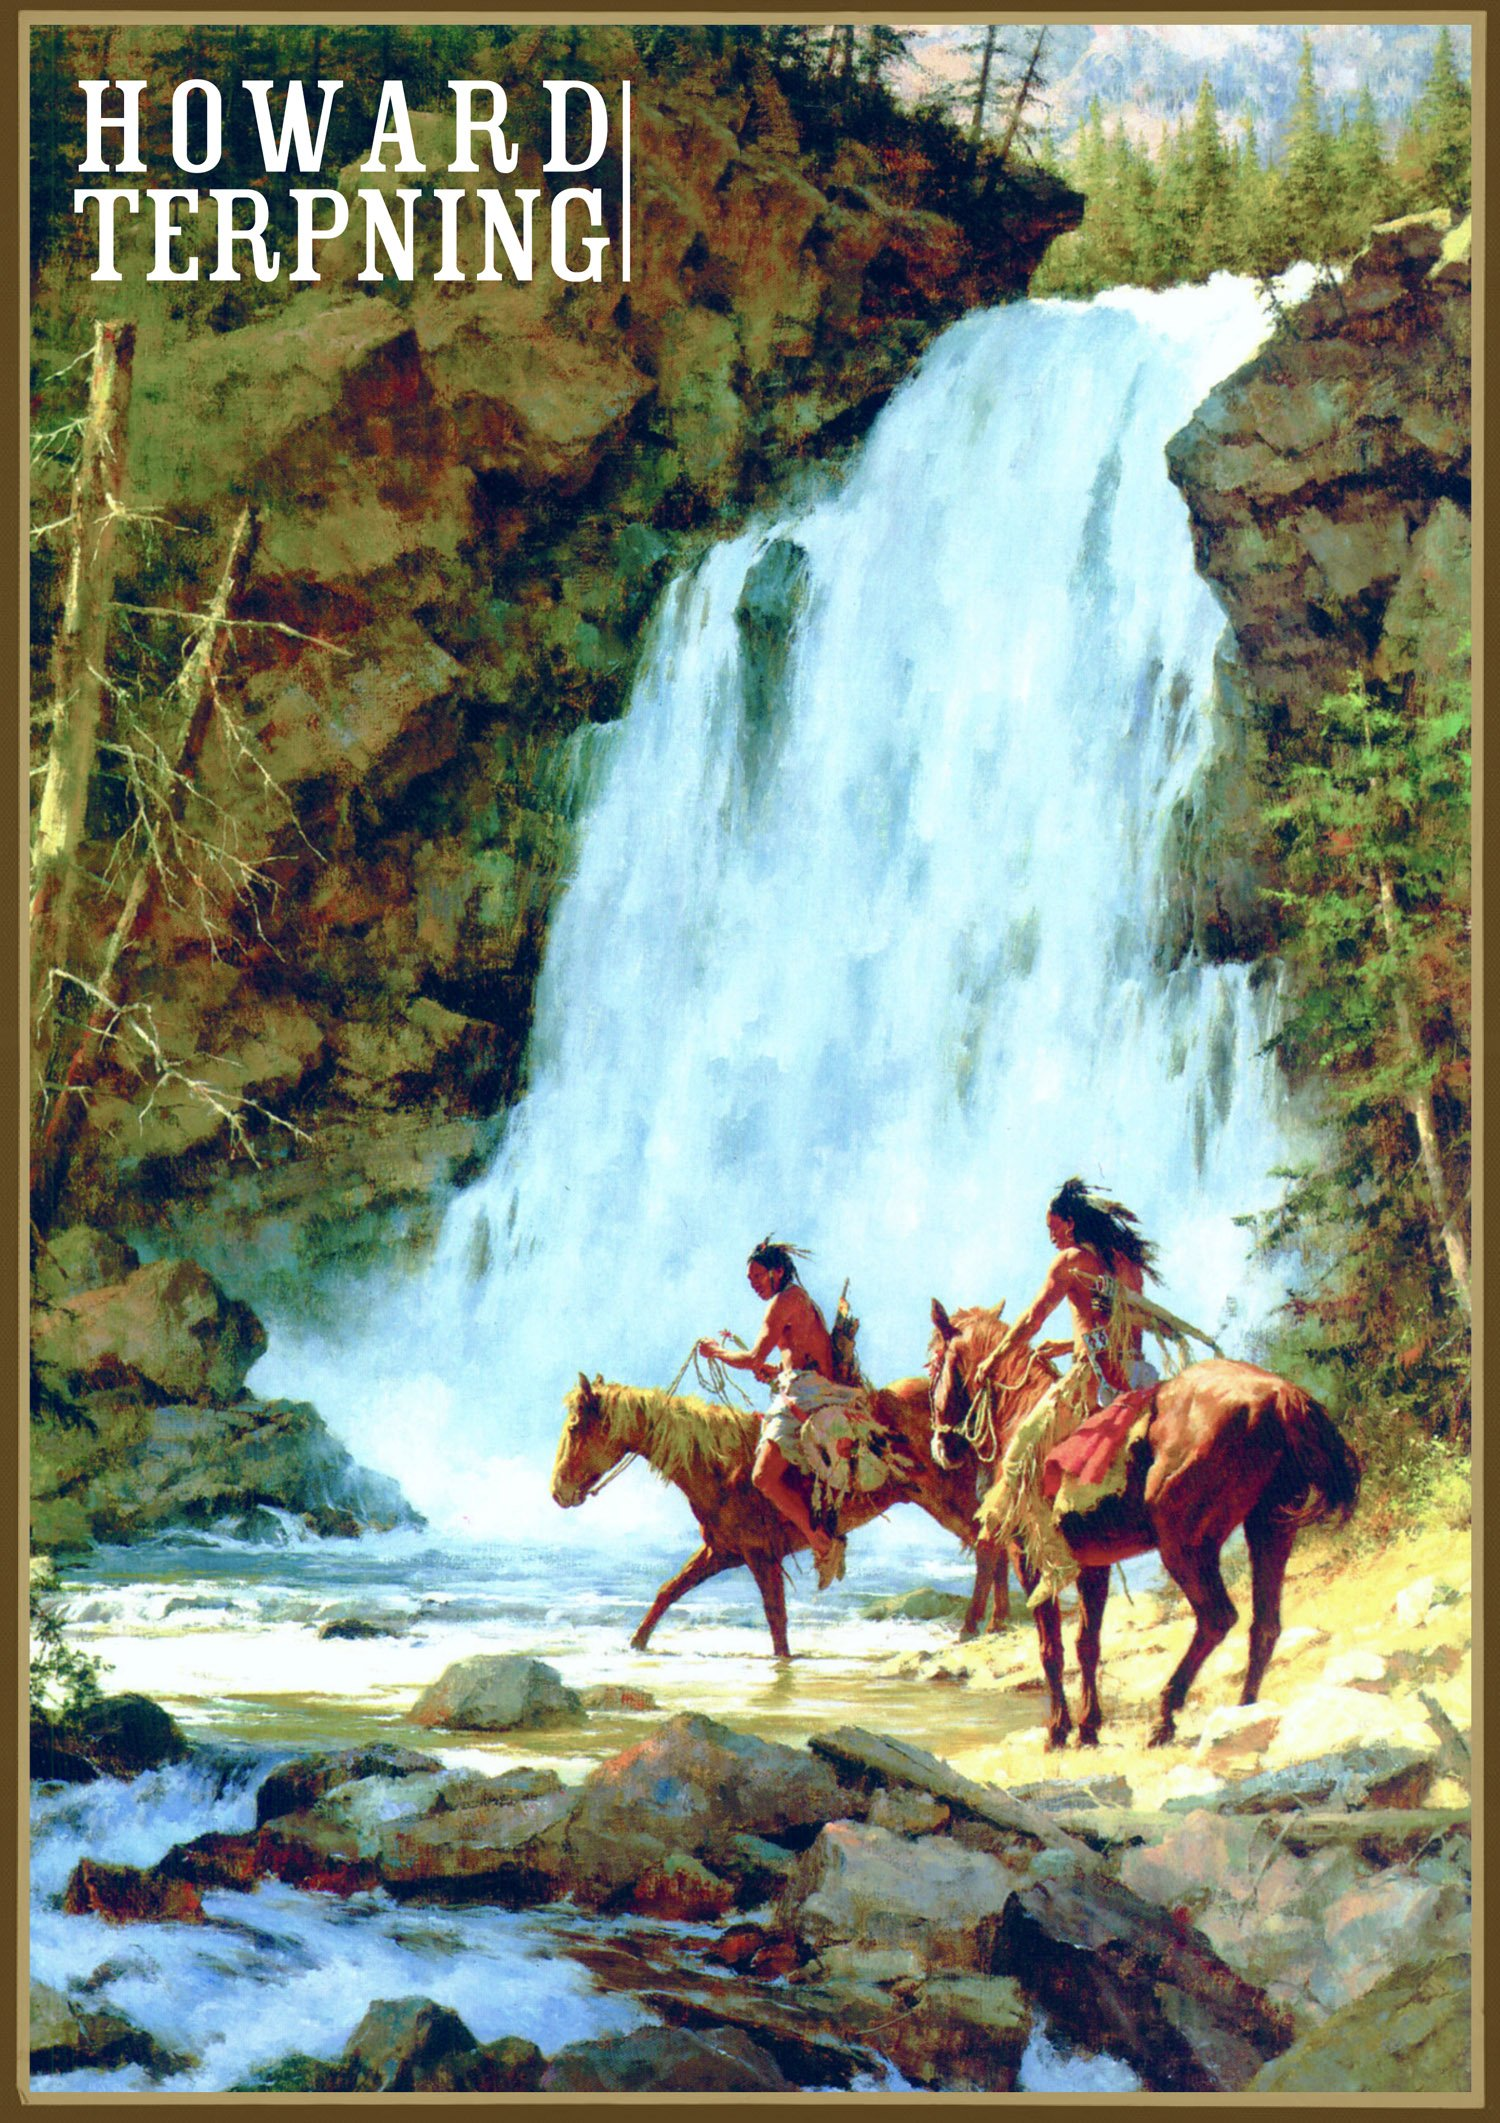 wall-calendar-2018-12-pages-8-x11-native-american-indian-horserider-by-howard-terpning-vintage-art-poster